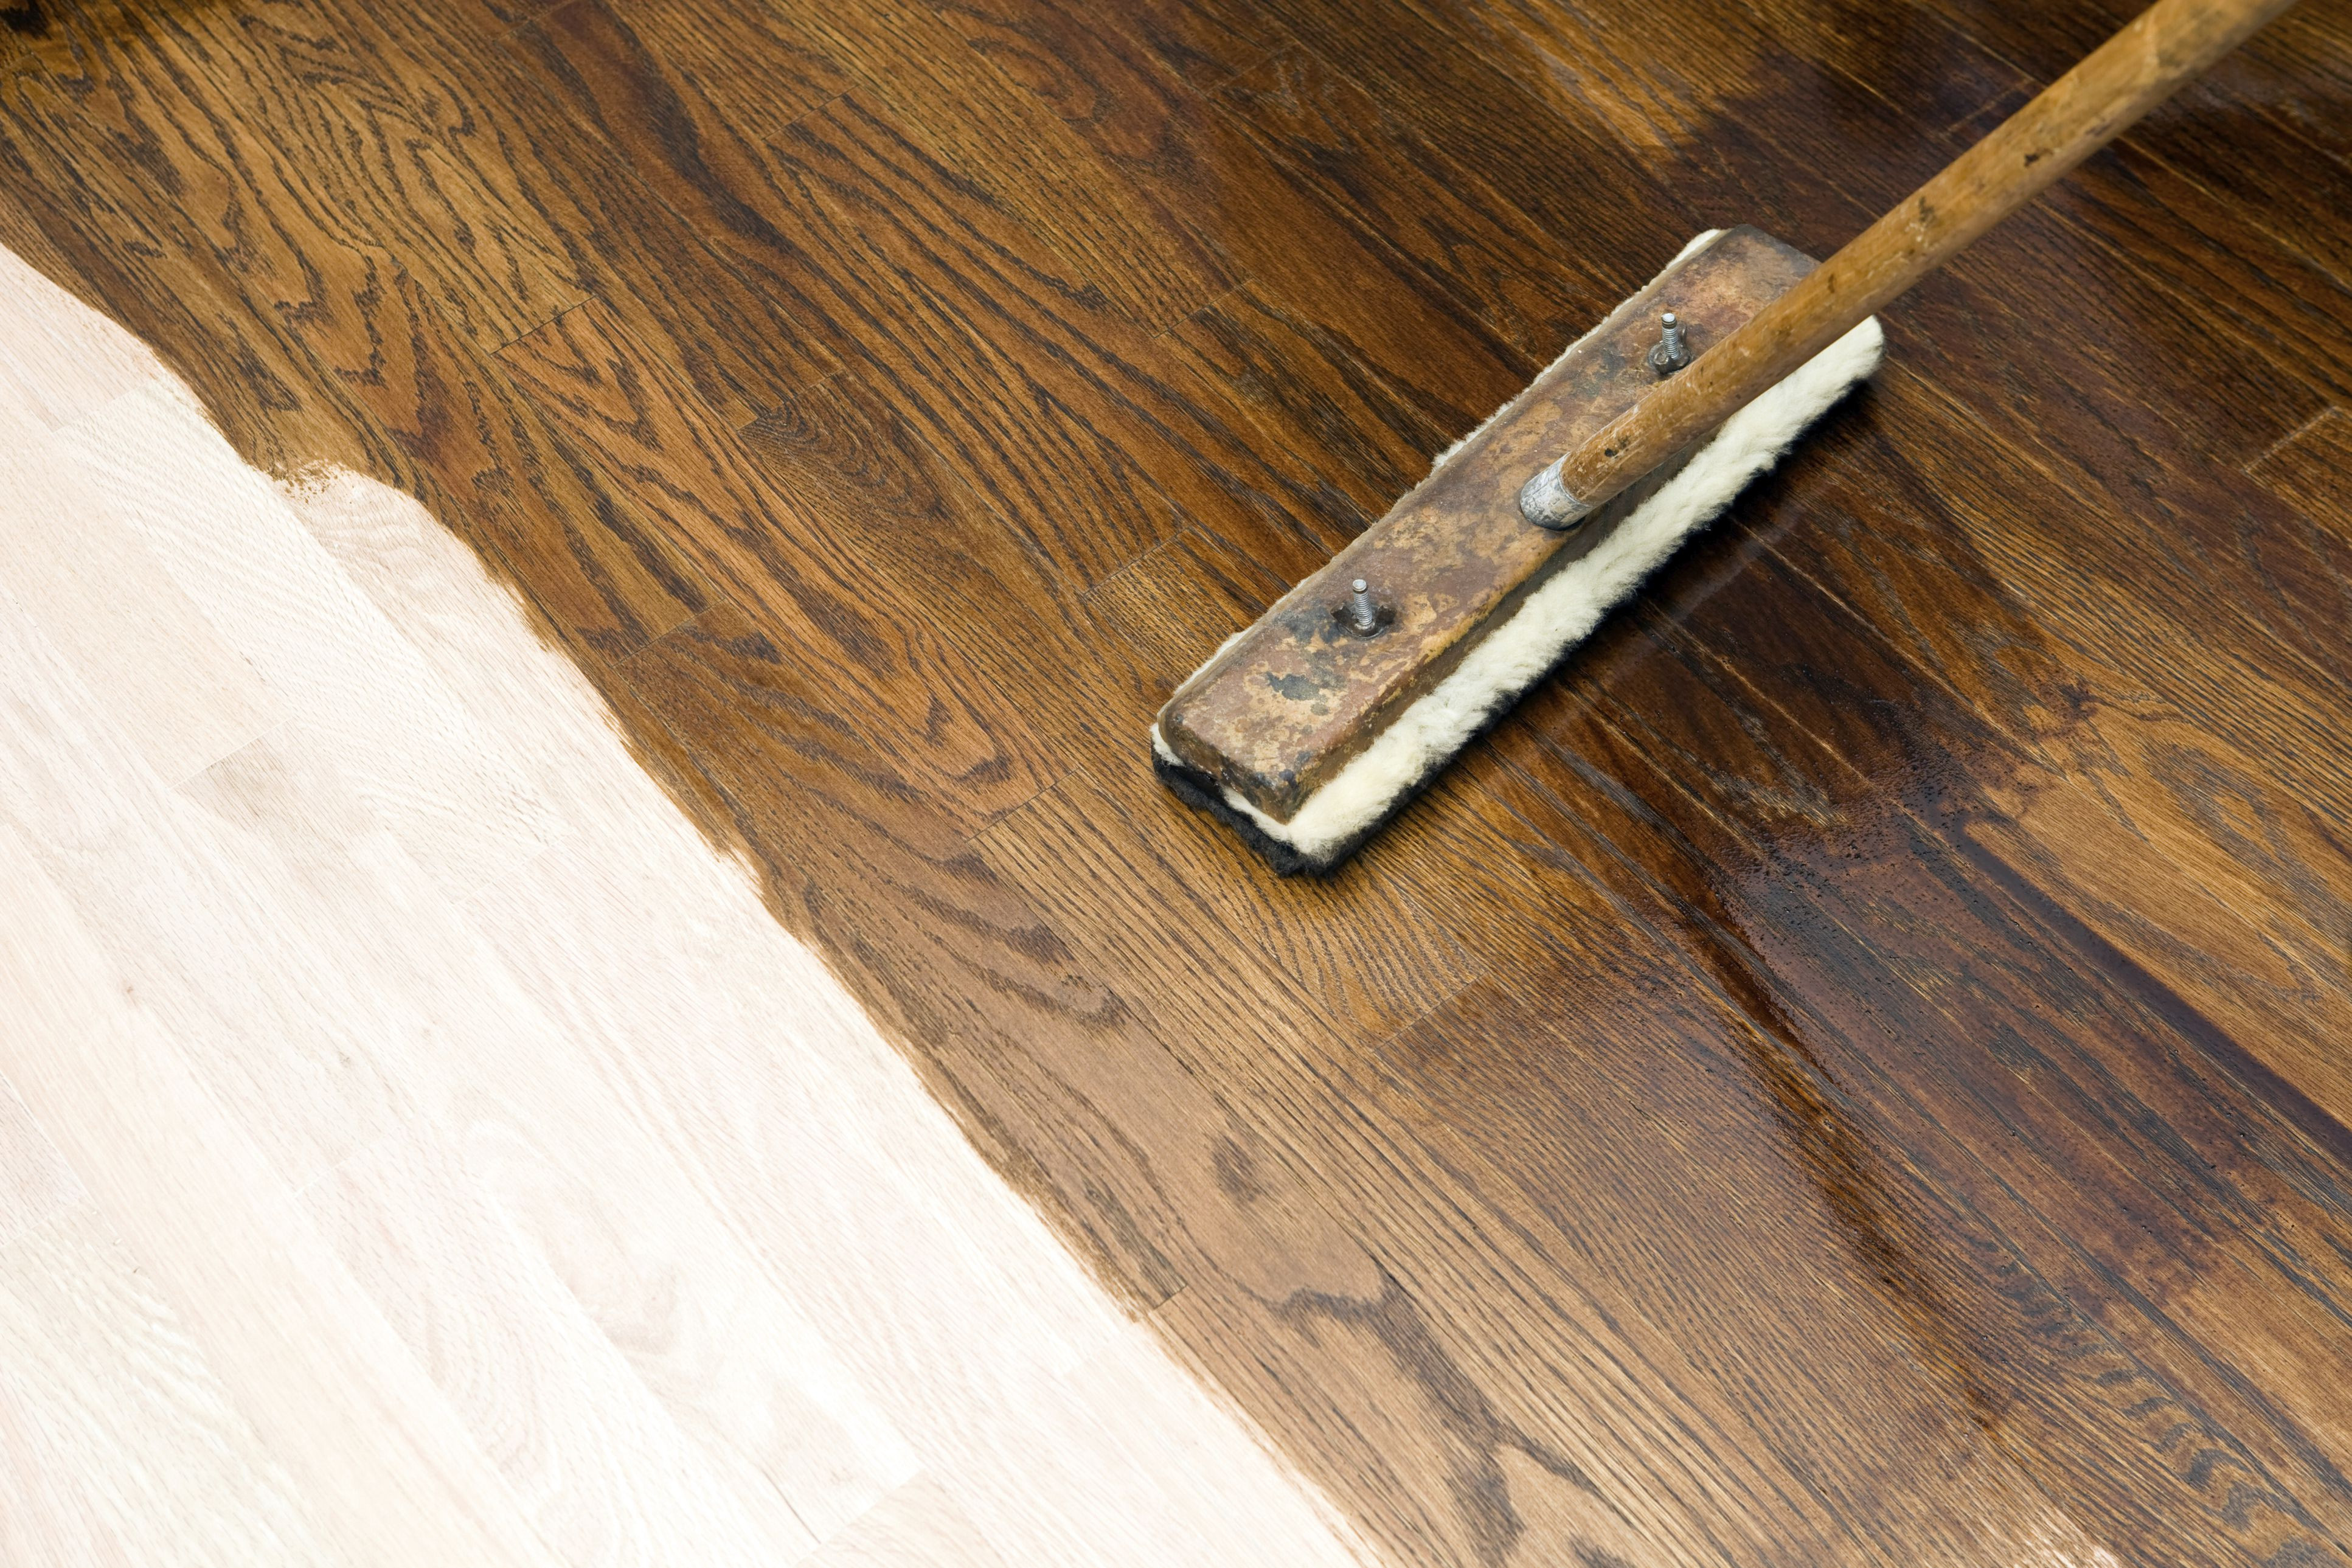 laminate hardwood flooring for sale of how to build equity what it means to own more of your home inside dark stain application on new oak hardwood floor 184881406 573e139f5f9b58723d7a472d